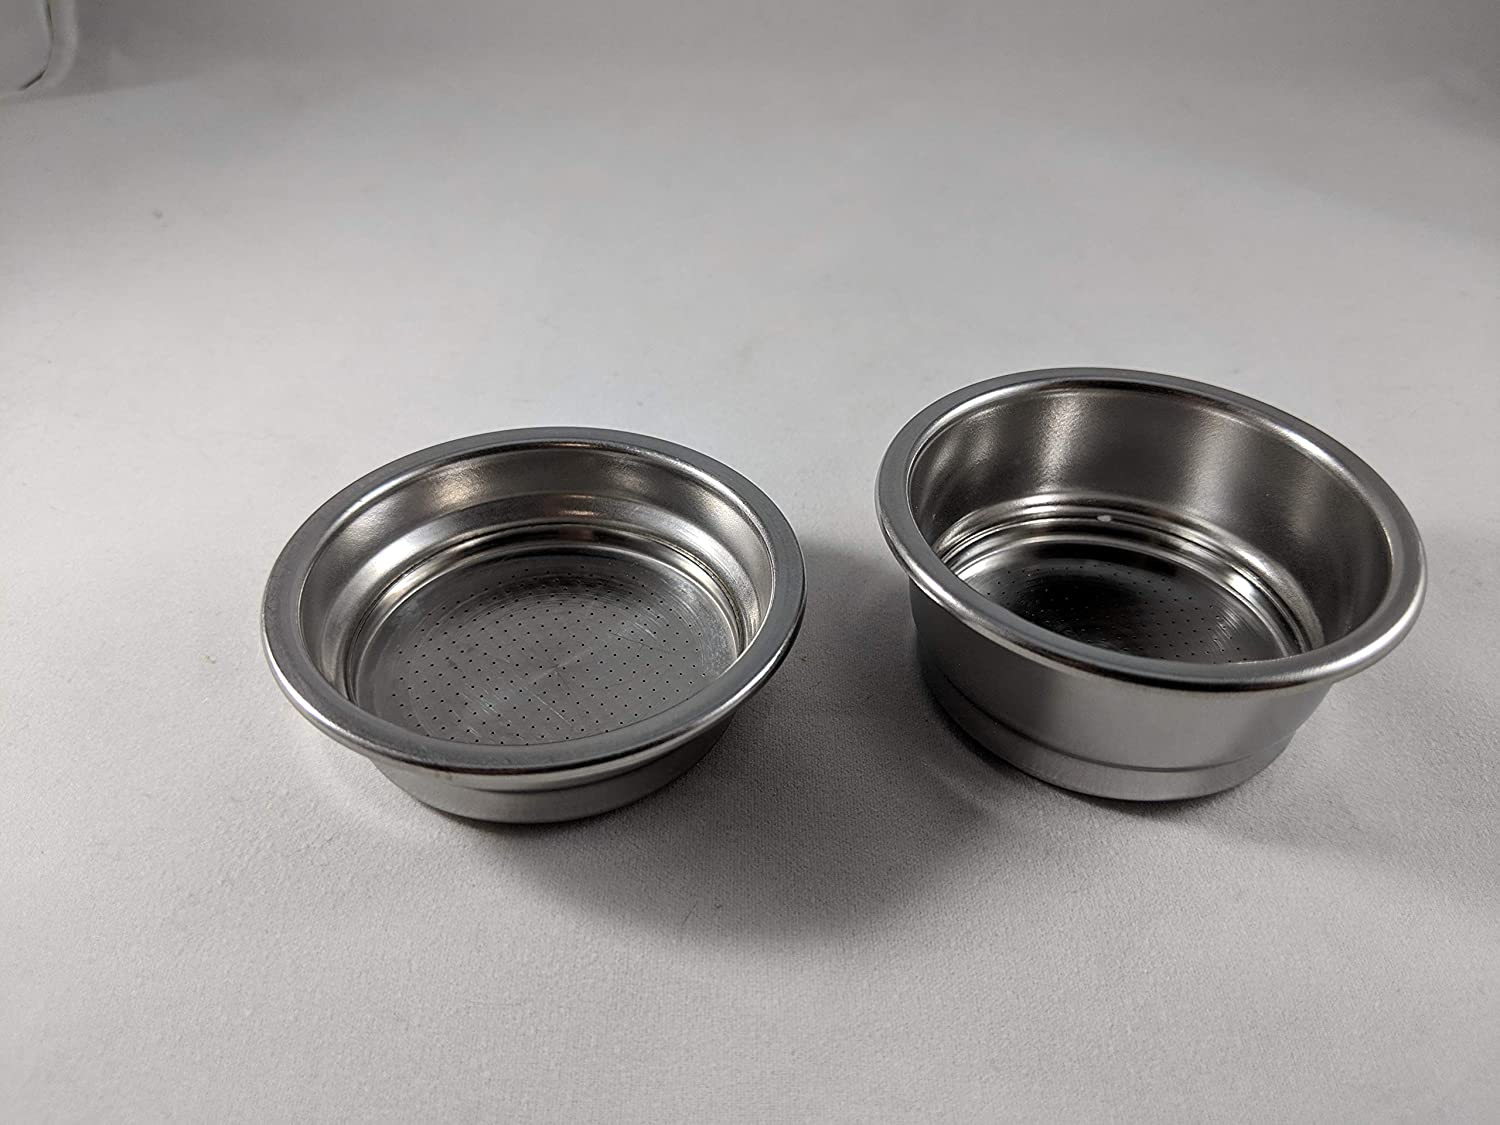 Compatible with Kenmore Espresso Maker Replacement Cup set of 2